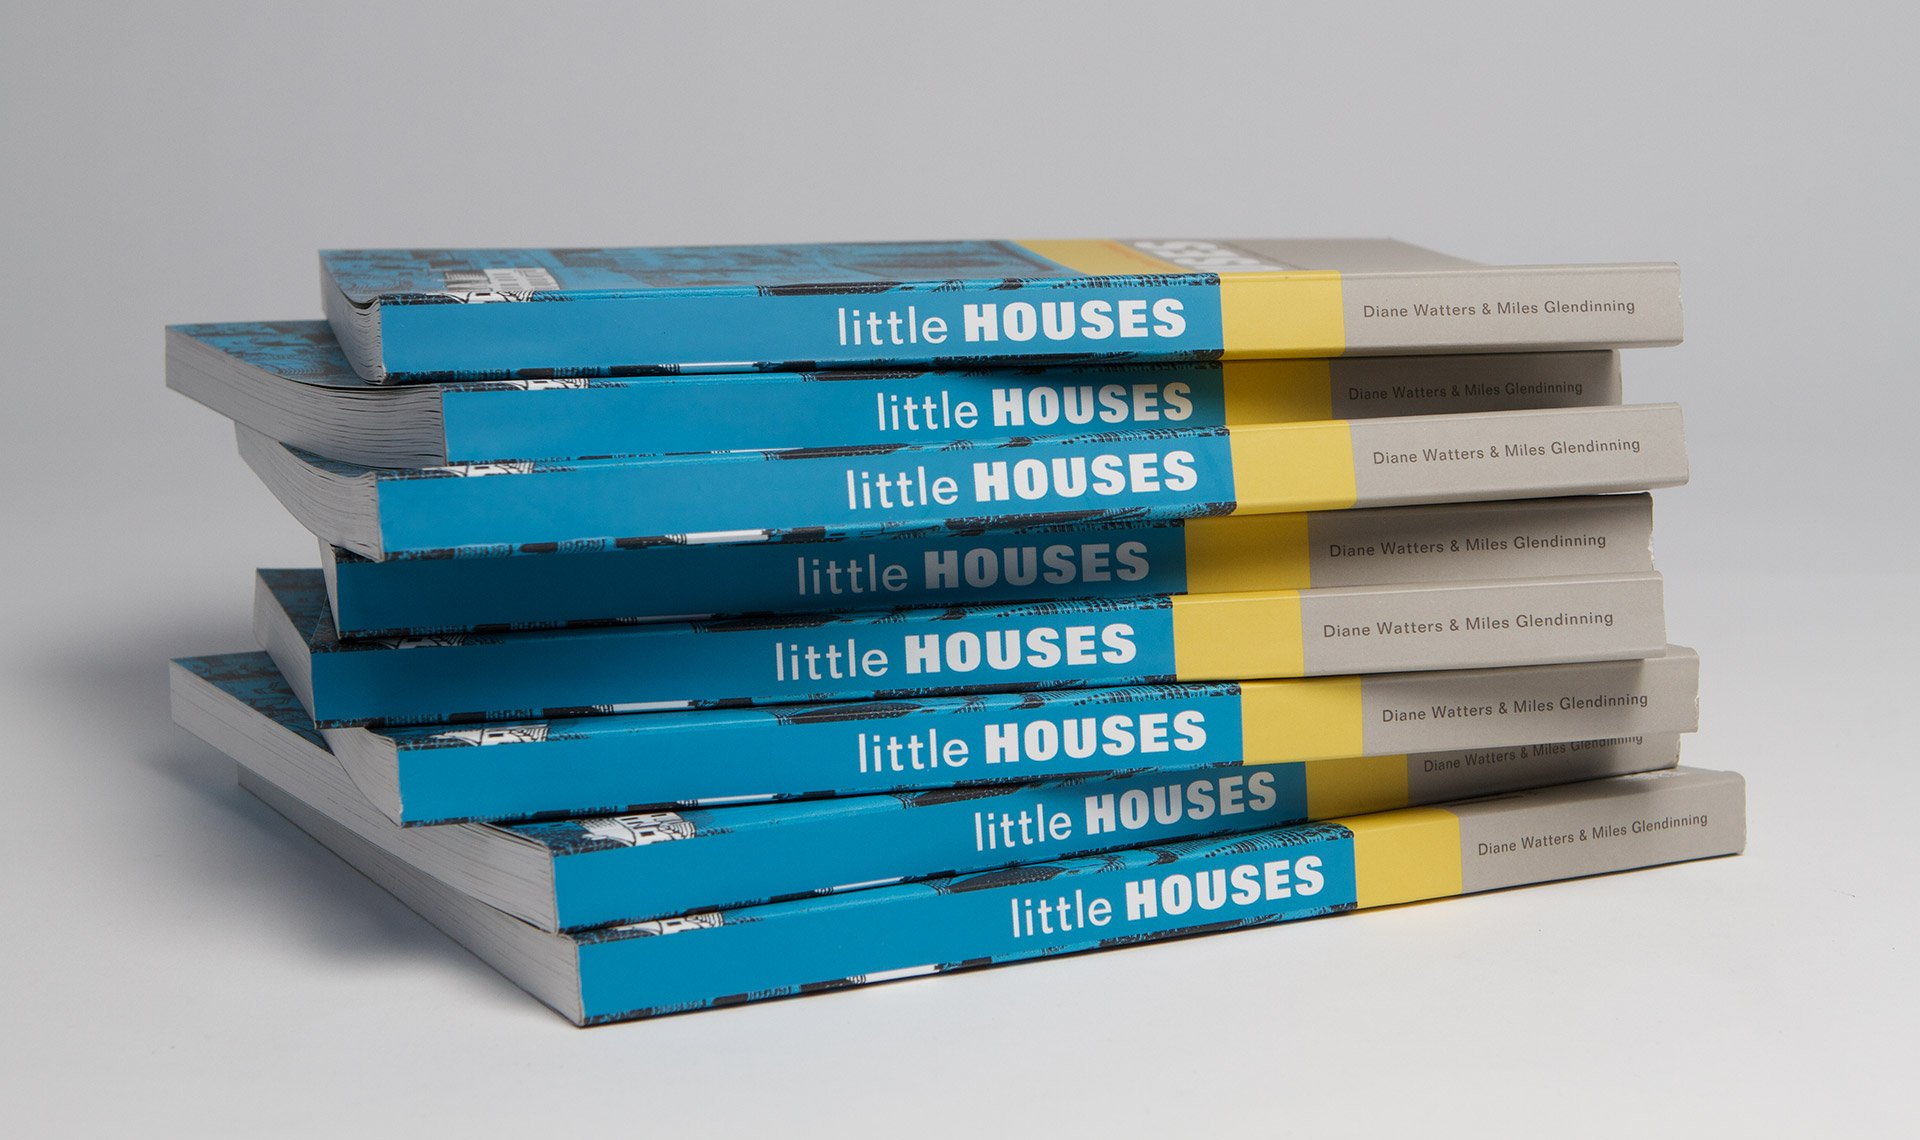 Little houses book design